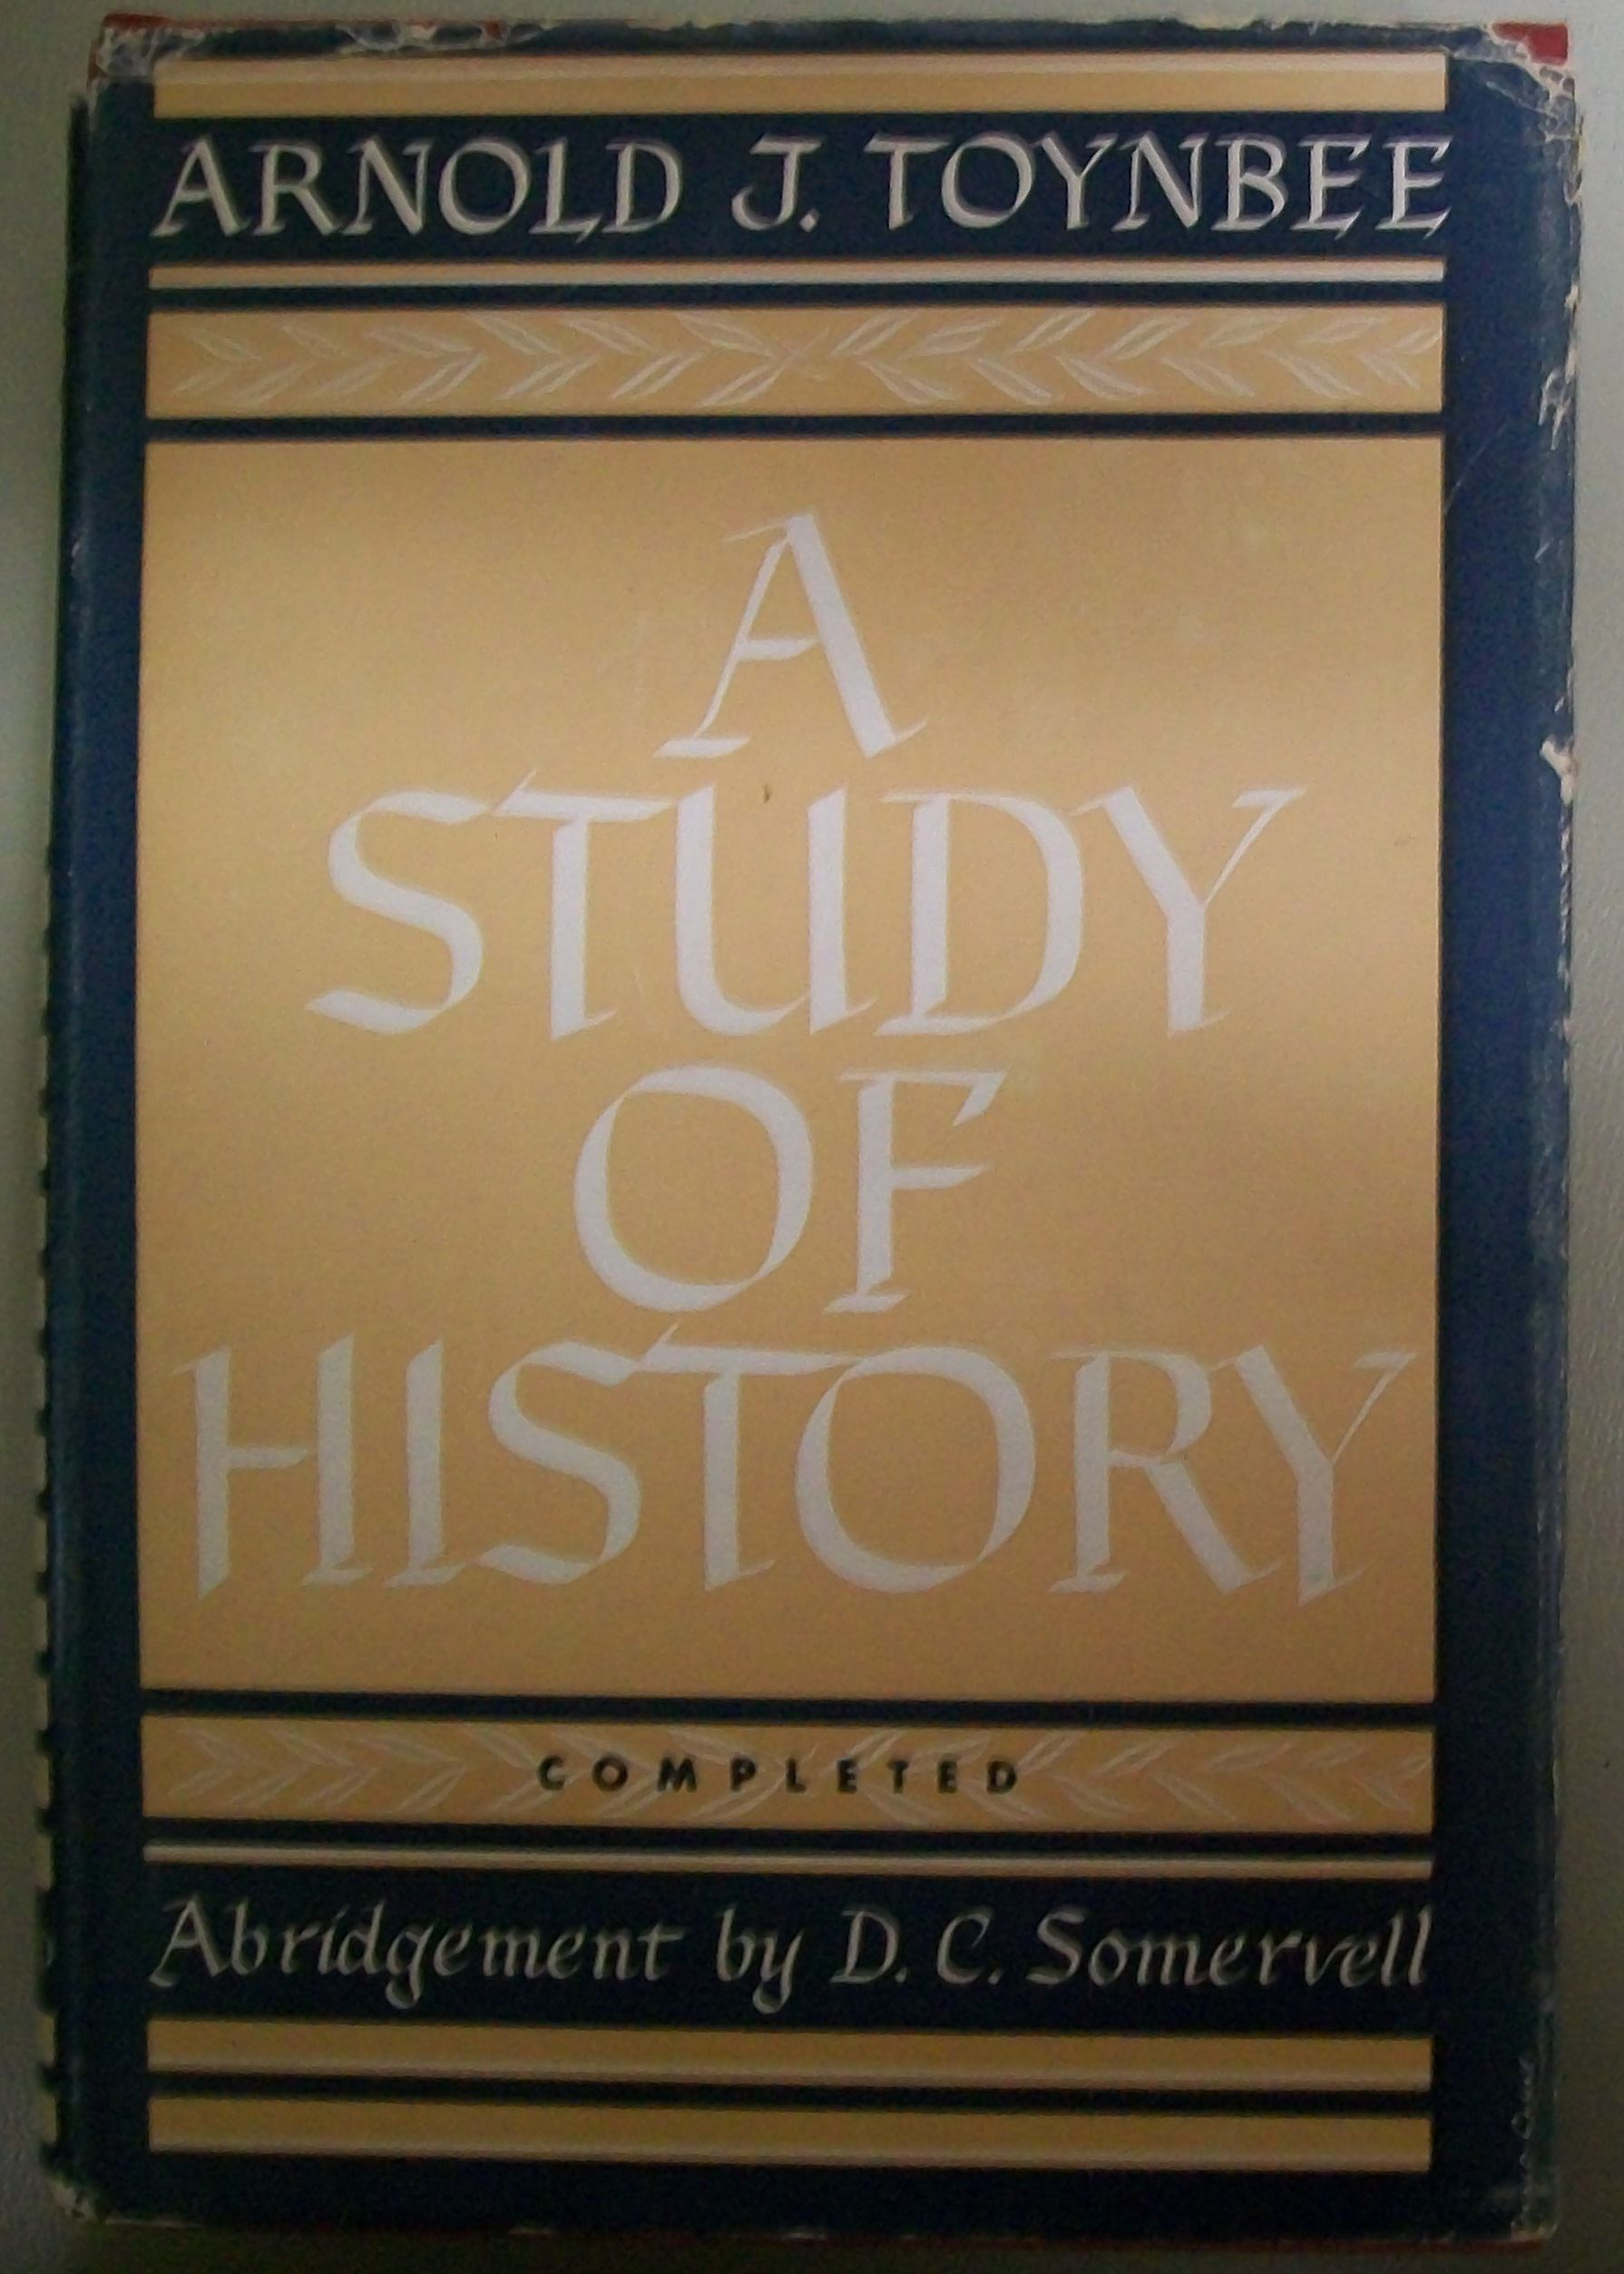 A study of history   Open Library